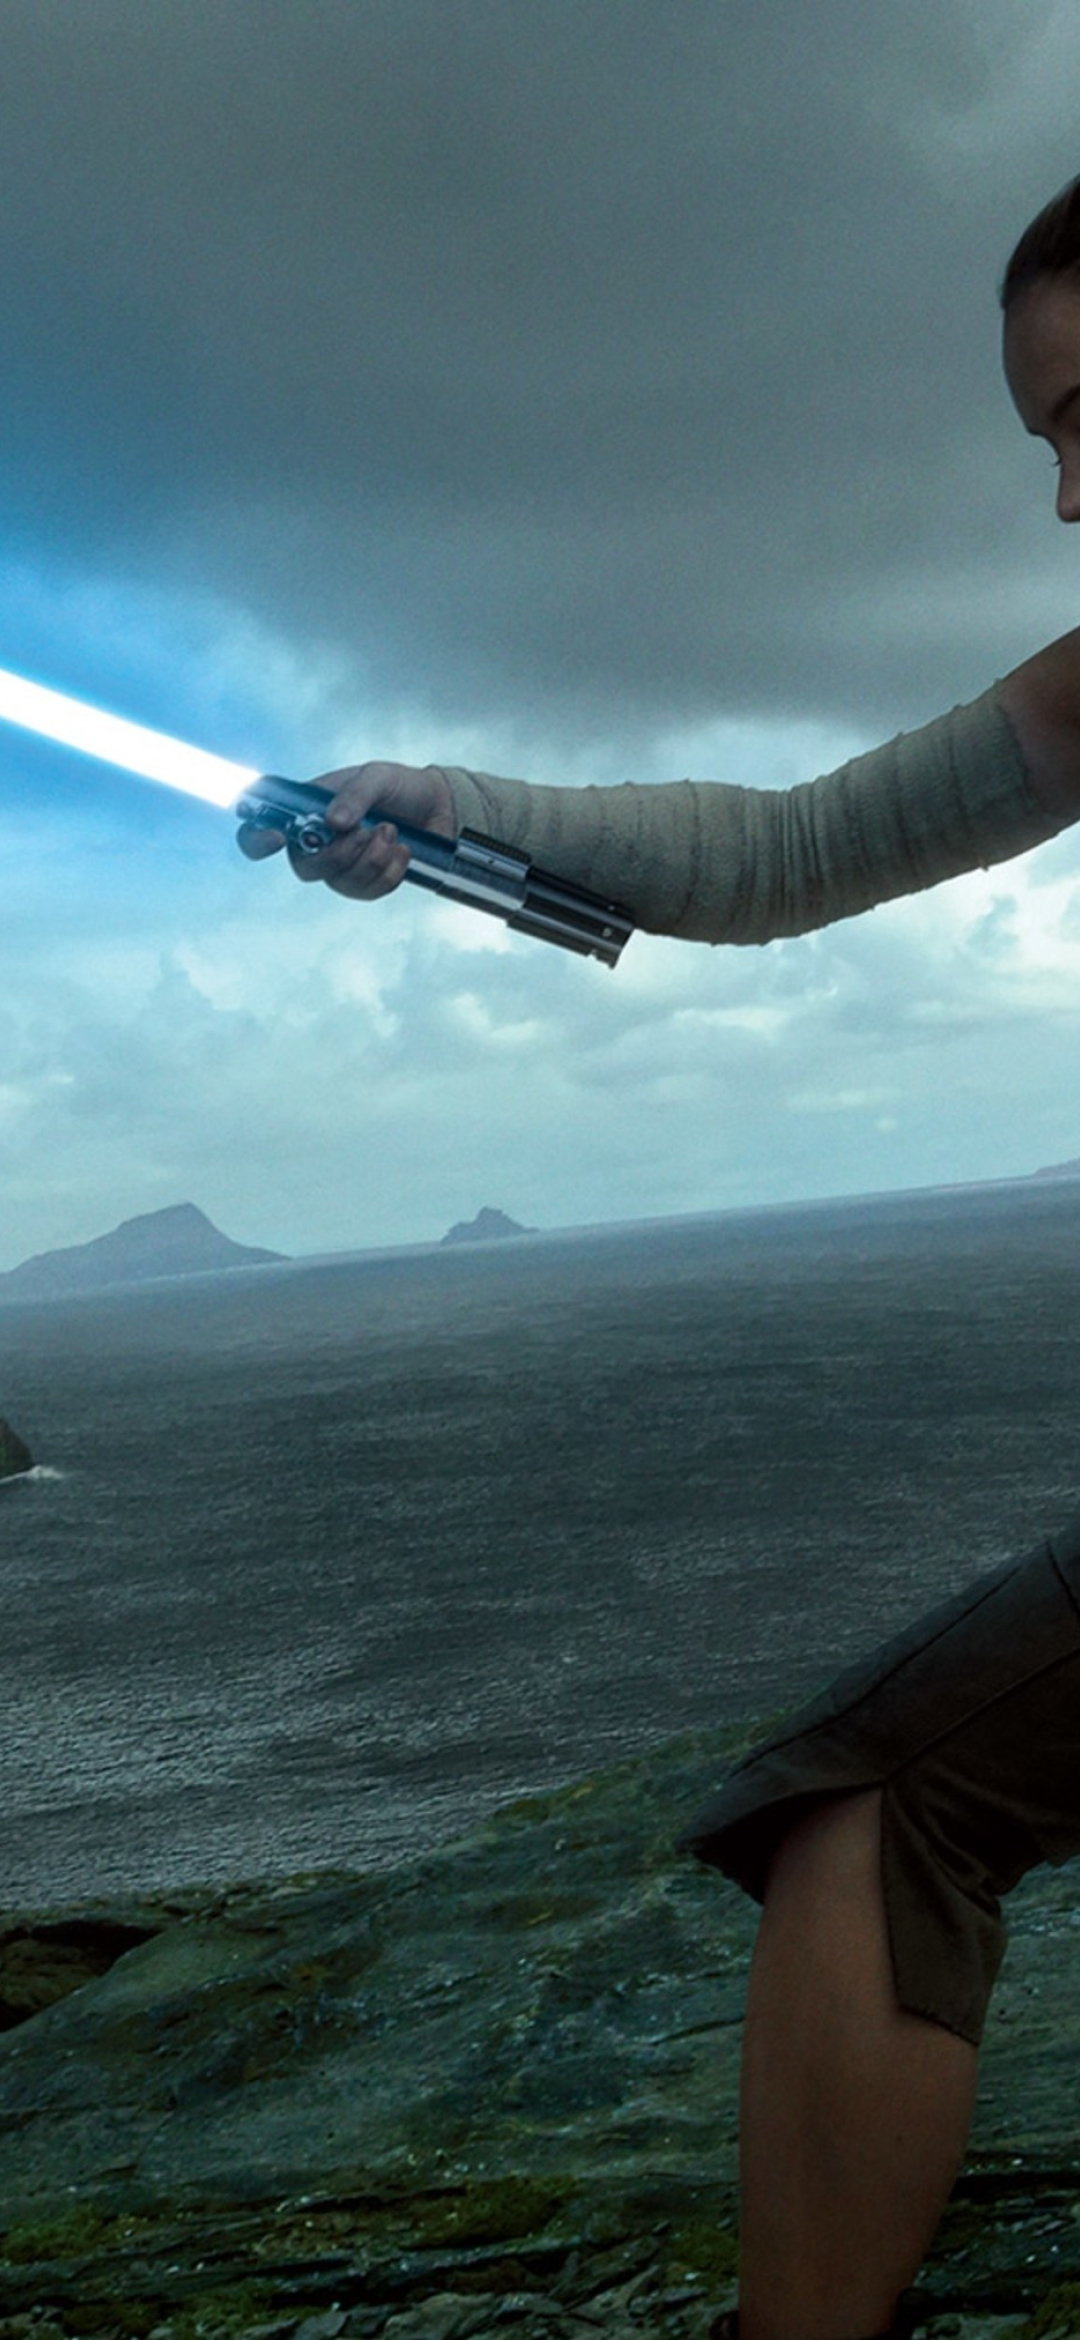 1080x2340 Rey Star Wars 1080x2340 Resolution Wallpaper Hd Movies 4k Wallpapers Images Photos And Background